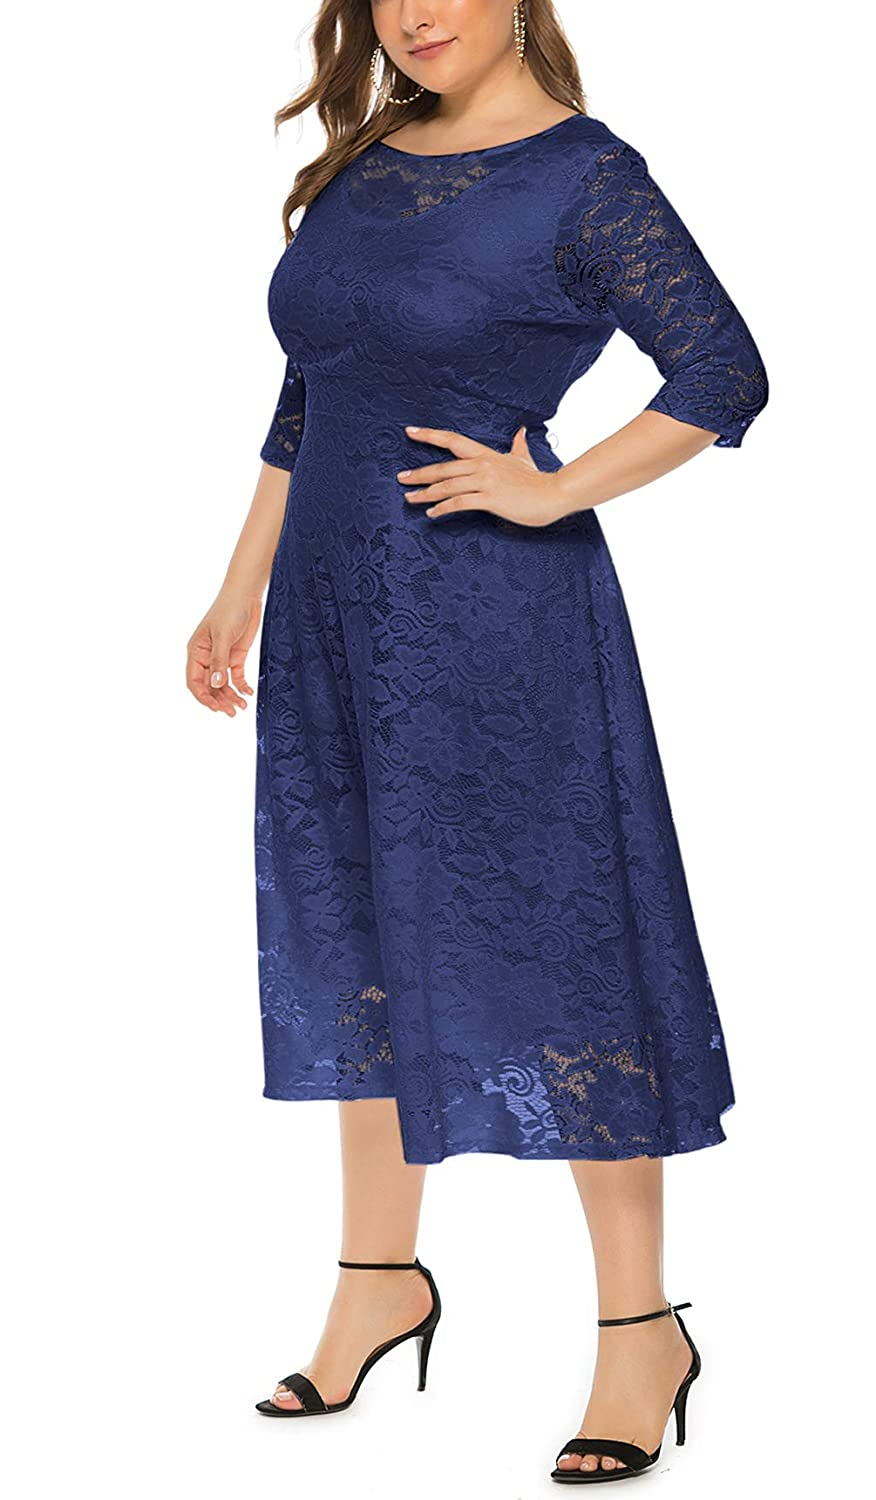 Eternatastic Womens Floral lace Plus Size Midi Dress Scooped Neckline Cocktail Party Dress